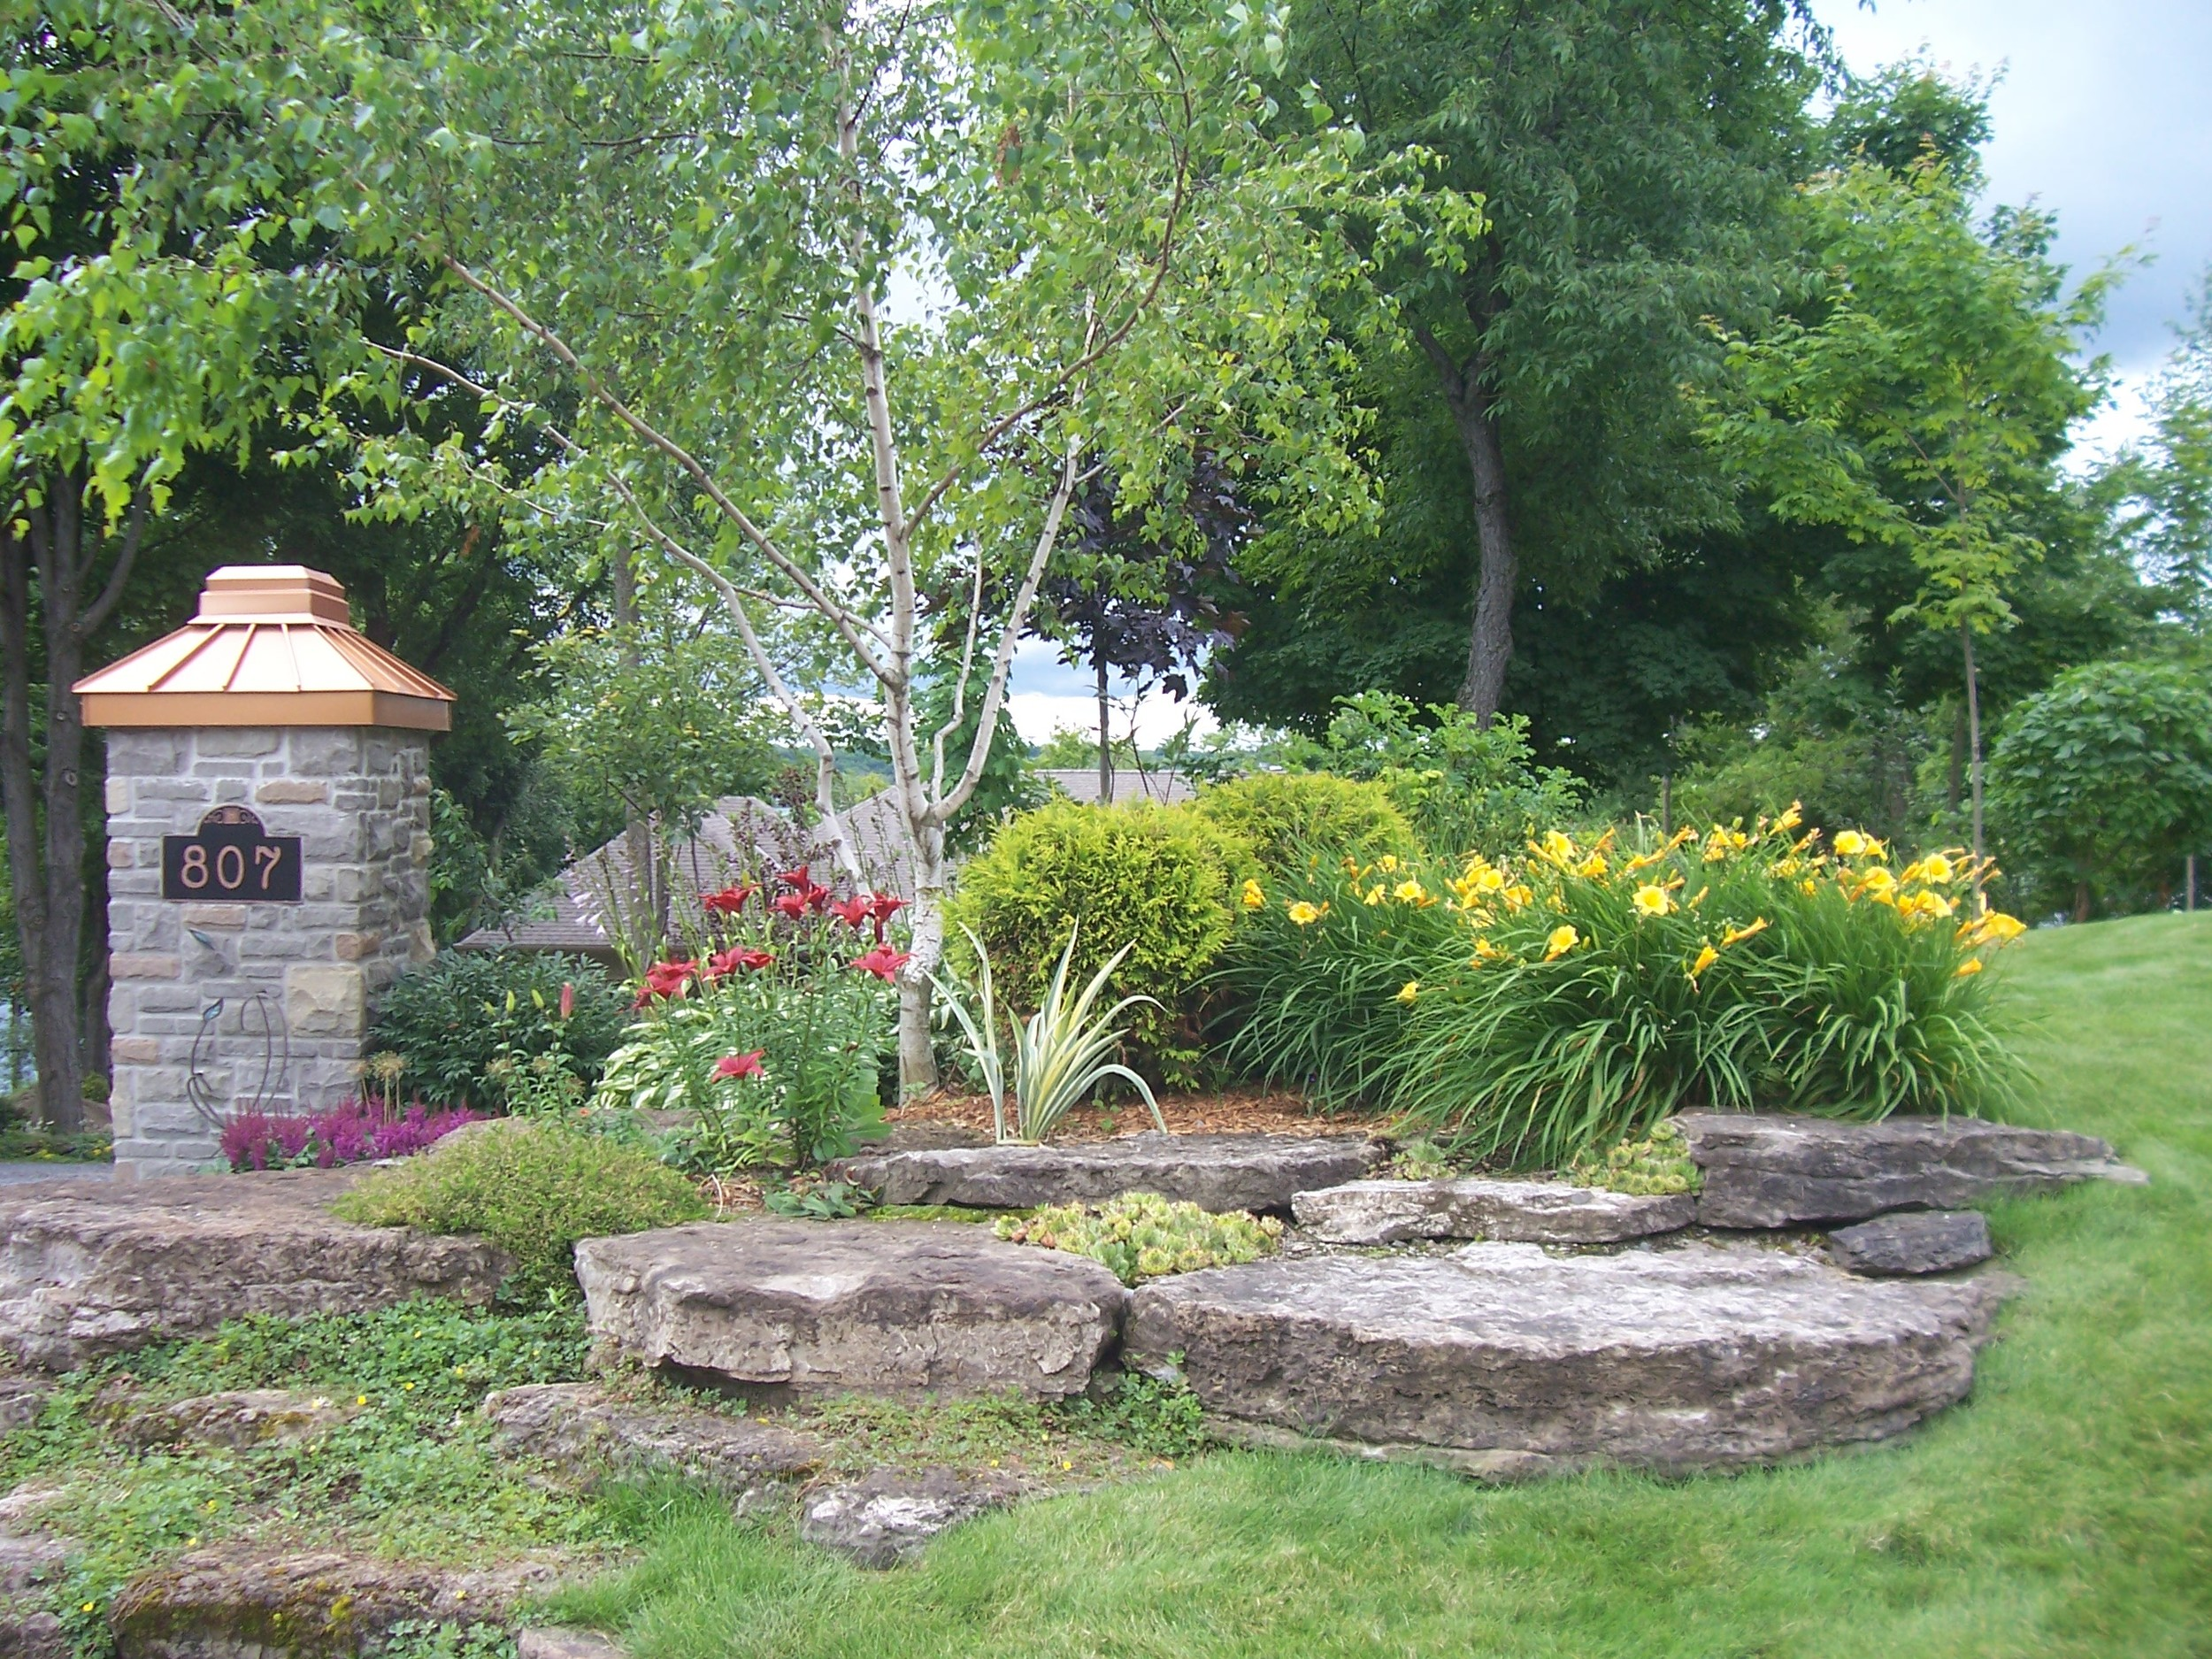 Landscape Design | Terrace Gardens | Dry Lay Stone | Waterfront Dream Home | Riverview Design Solutions | Landscaping | Prescott, Ontario, Canada